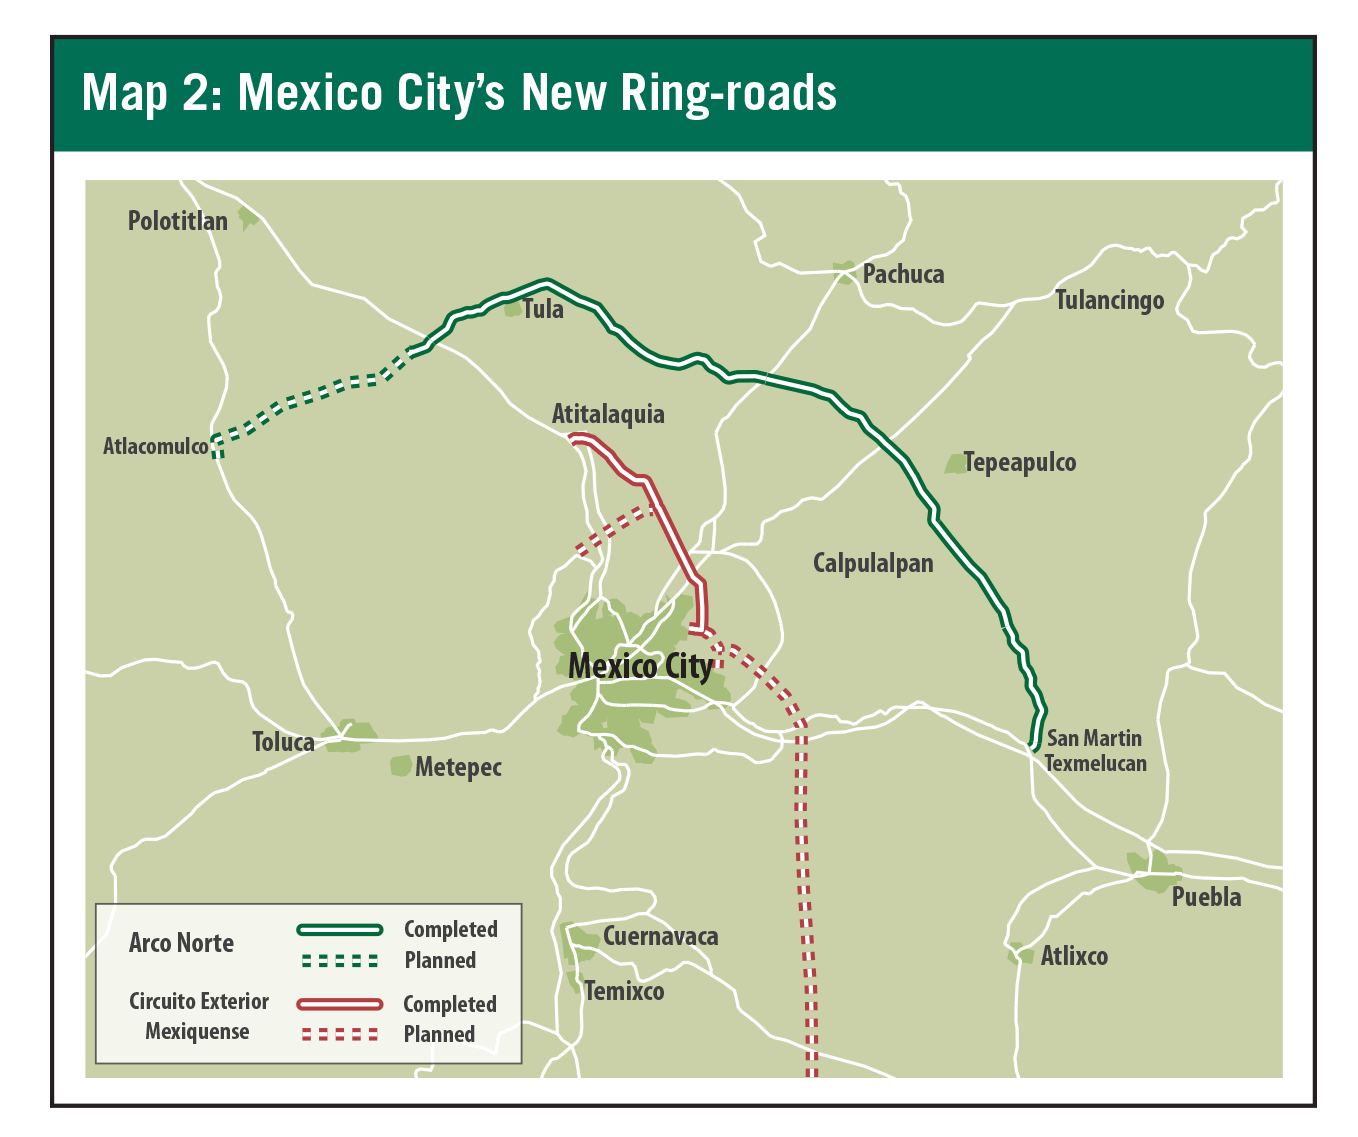 Map 2: Mexico City's New Ring-roads